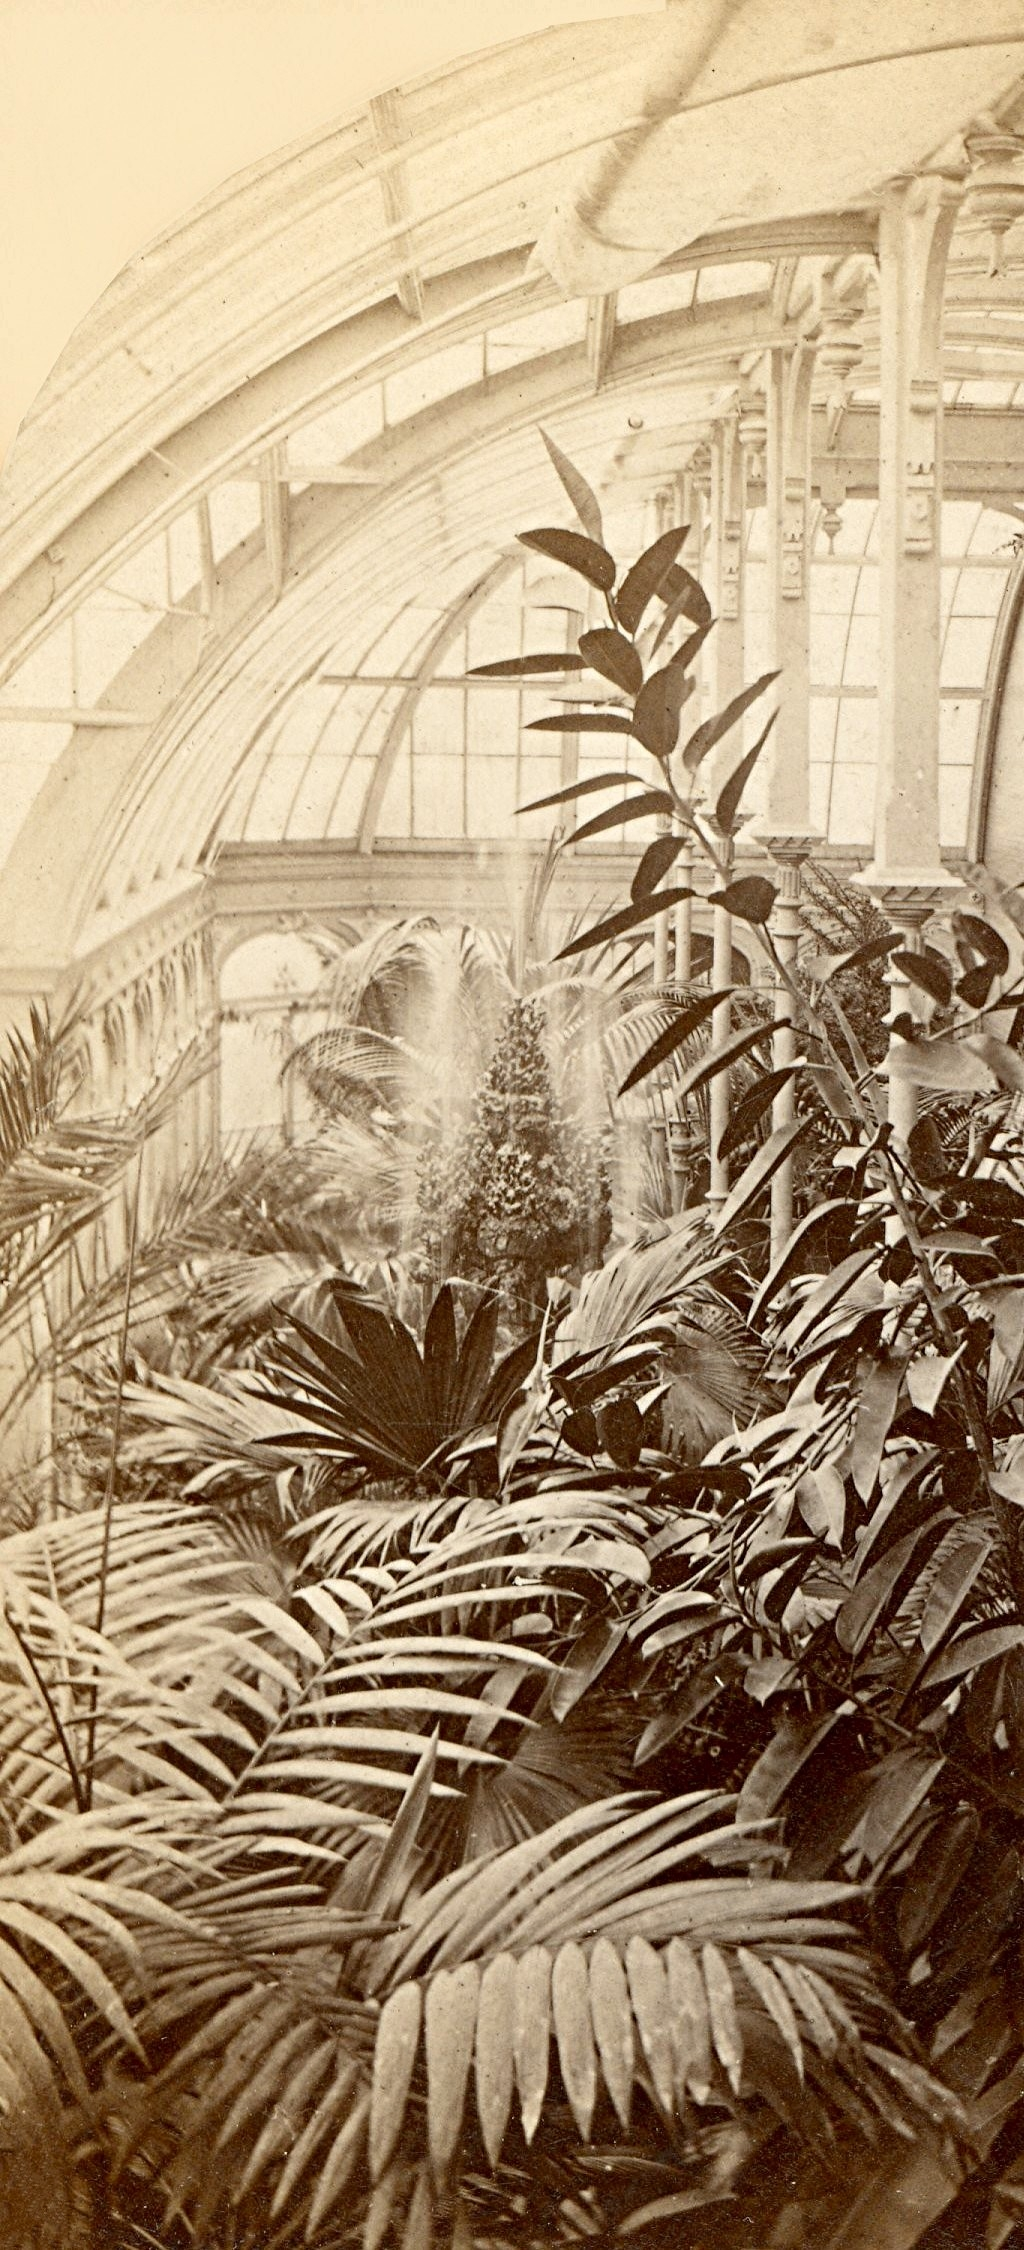 Interior of Alexander Mitchell's Mansion, Mid-1870s. Image courtesy of Jeff Beutner.